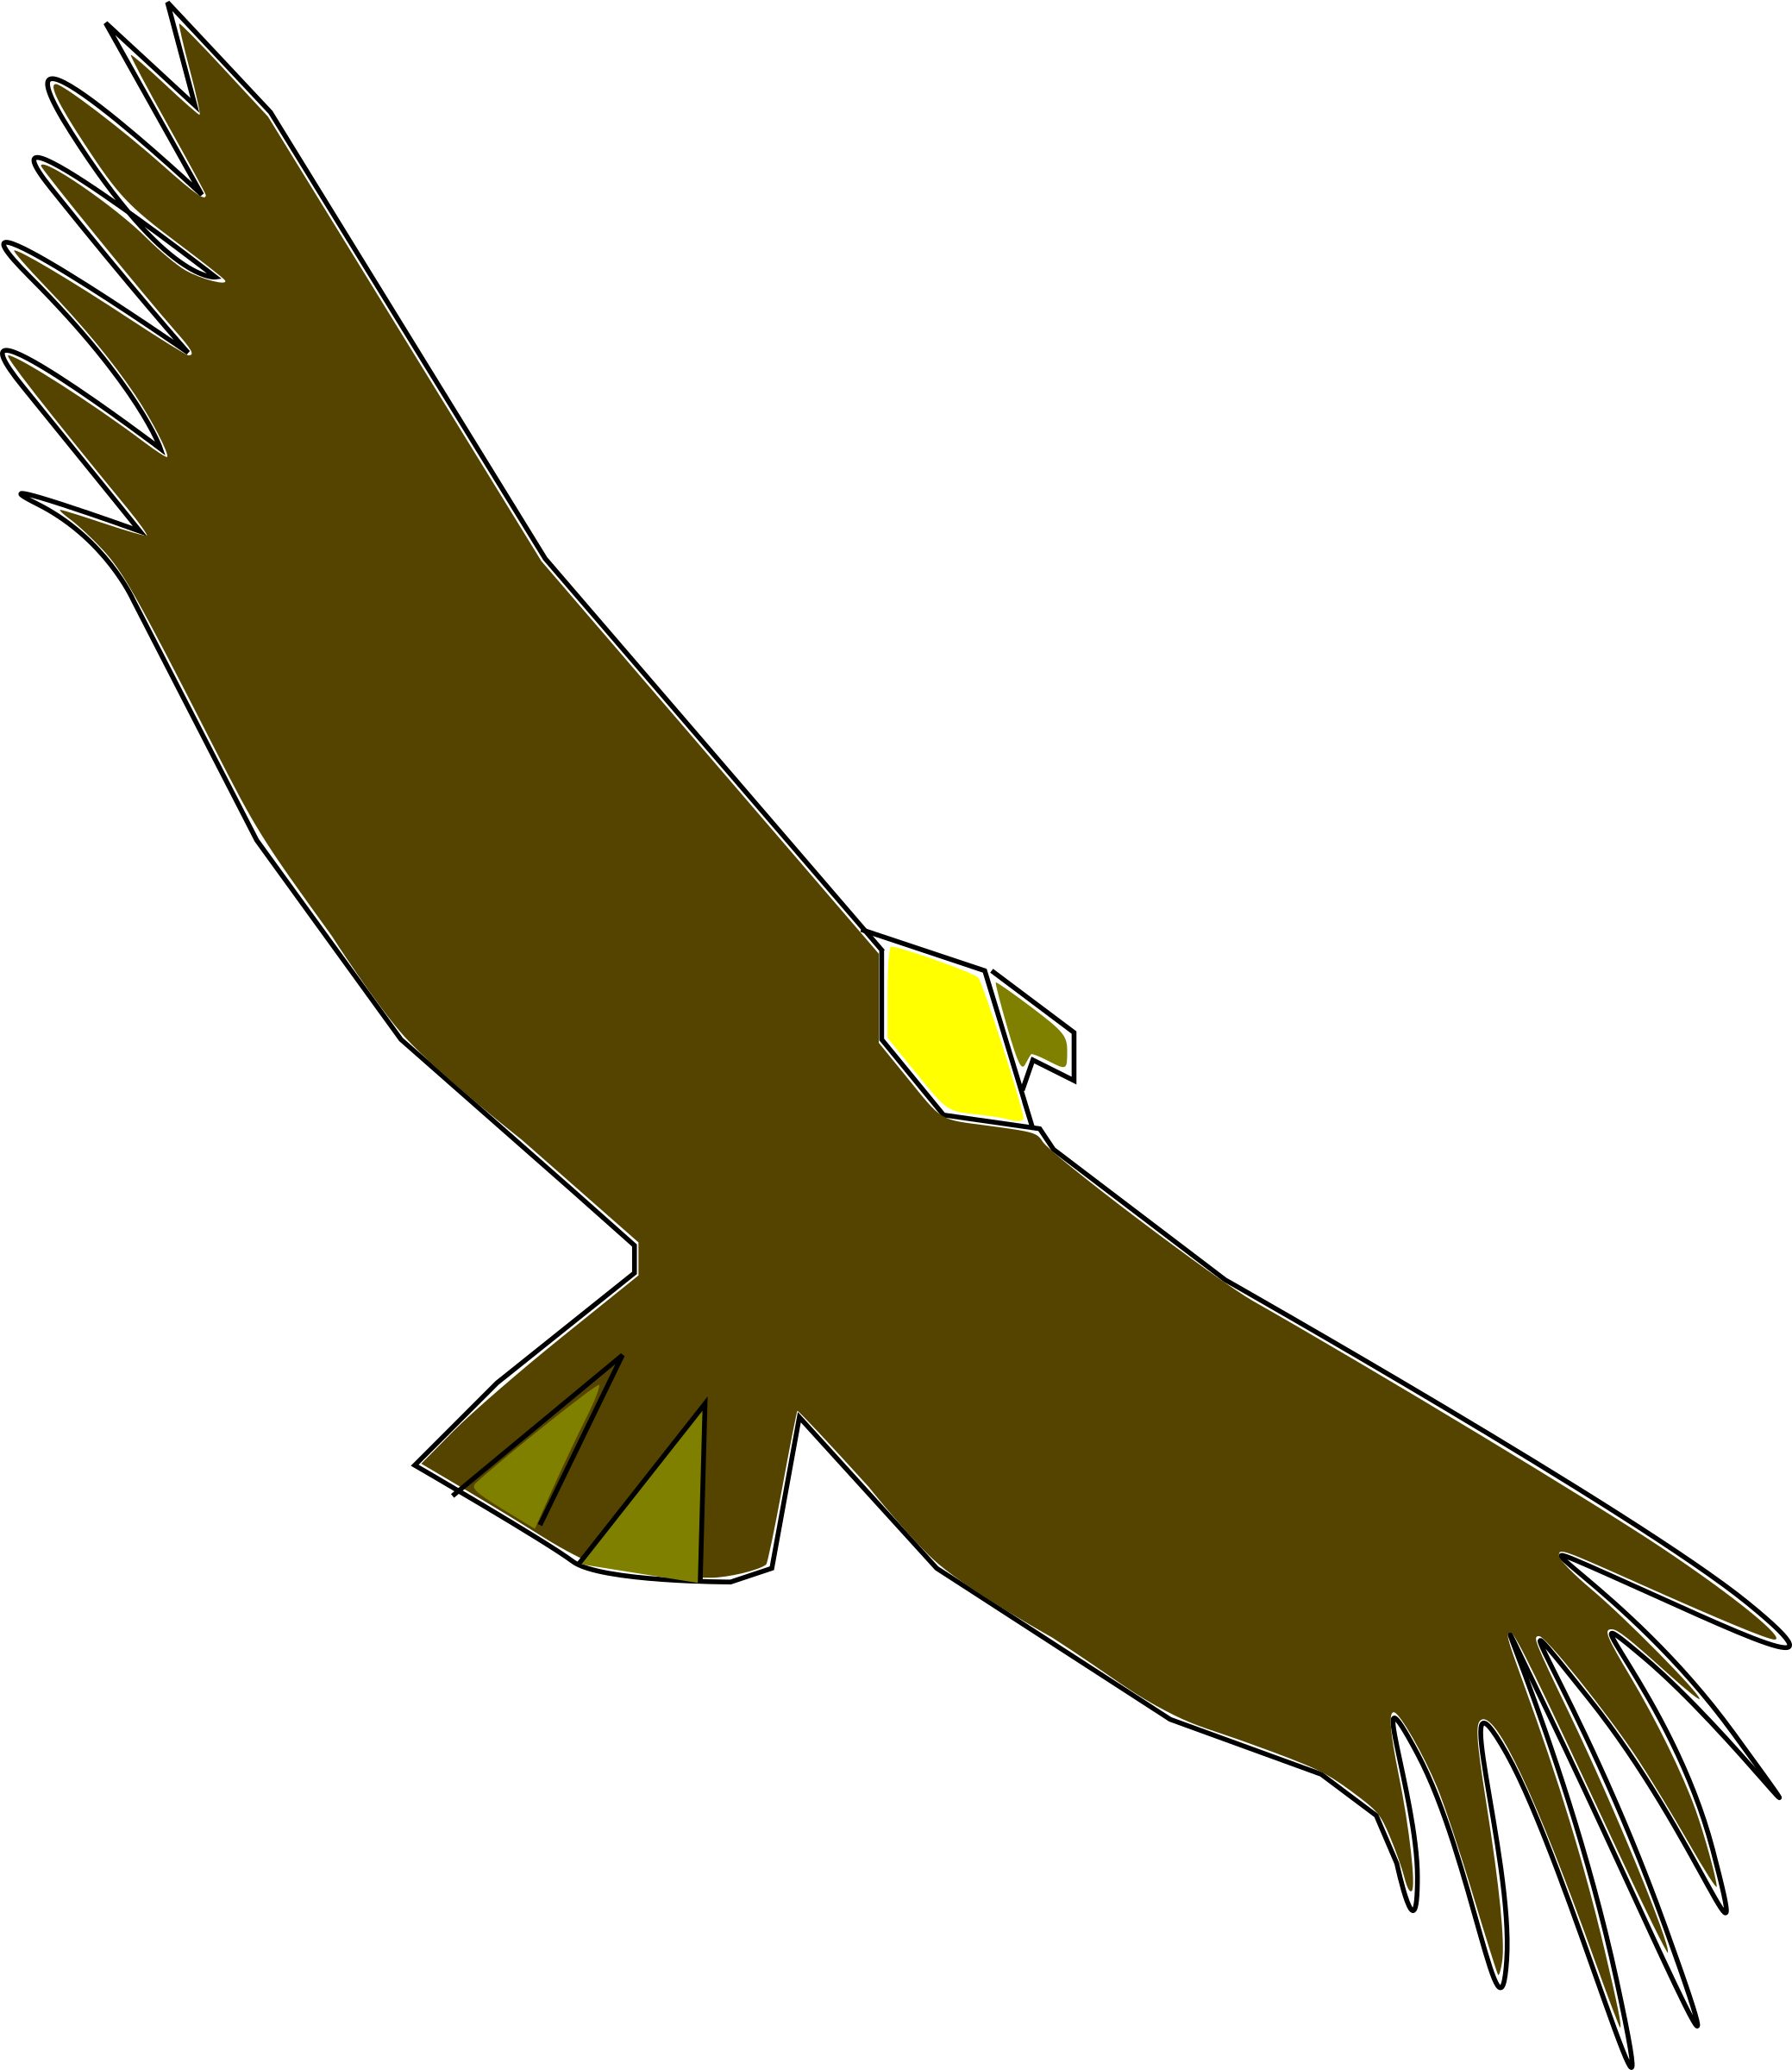 Condor drawing easy. Clipart at getdrawings com